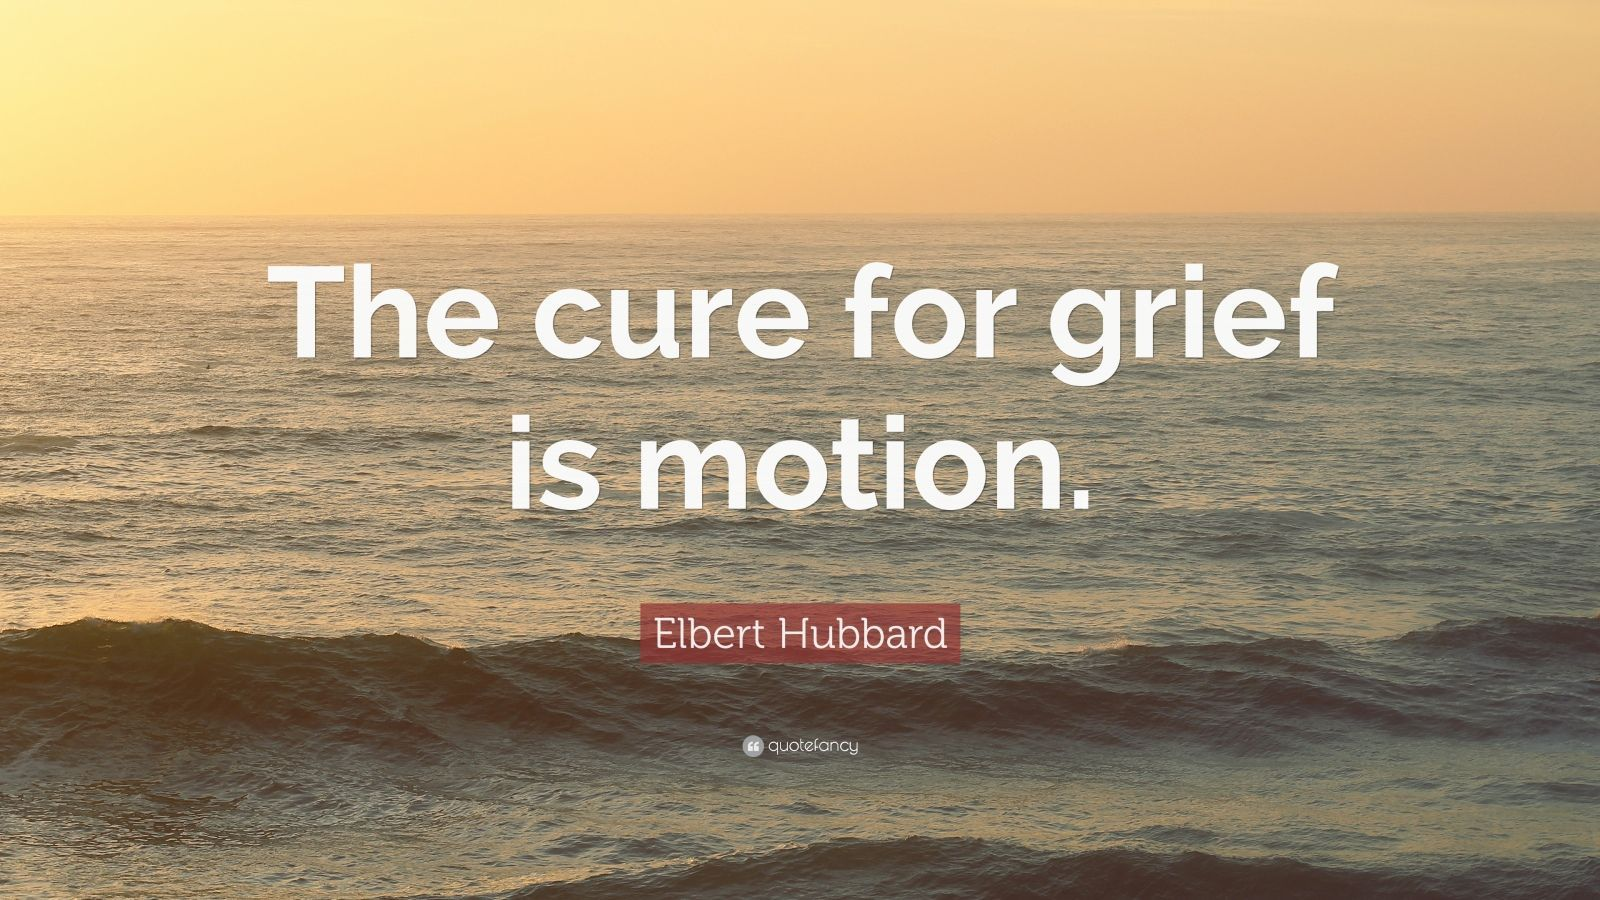 Elbert Hubbard Quote The Cure For Grief Is Motion Inspiration